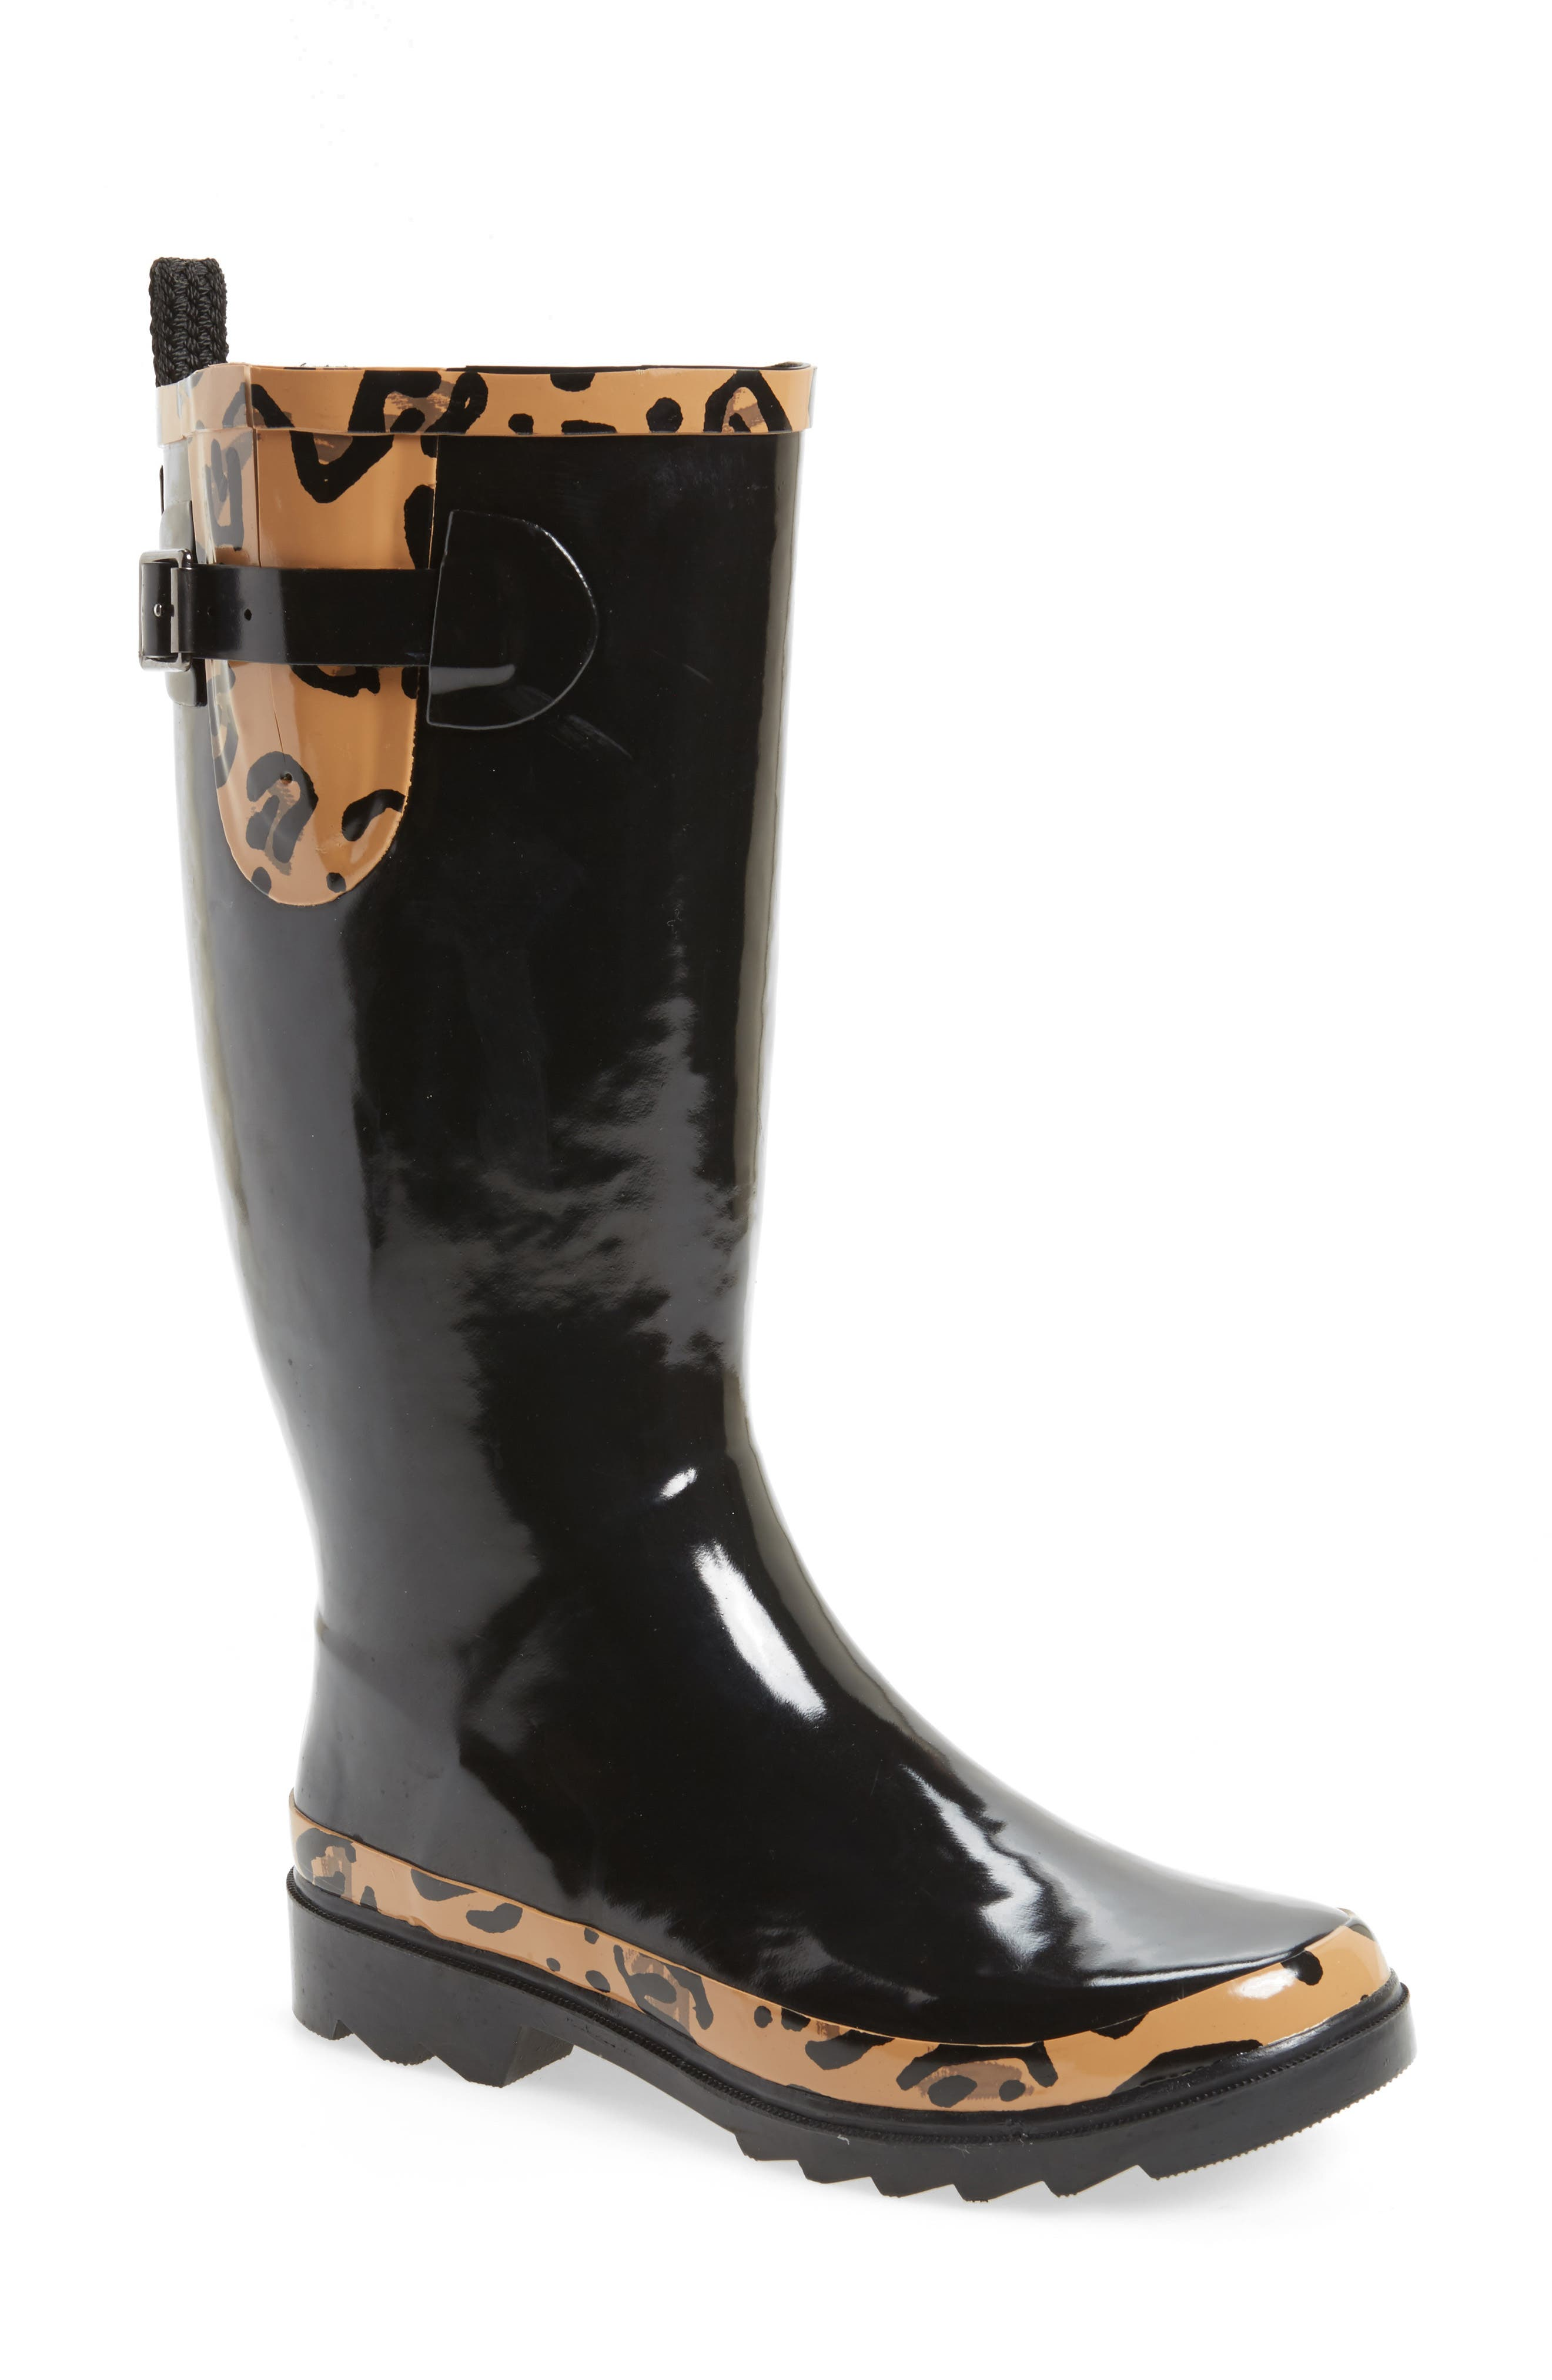 Rhythm Waterproof Rain Boot,                             Main thumbnail 1, color,                             BLACK LEOPARD PRINT